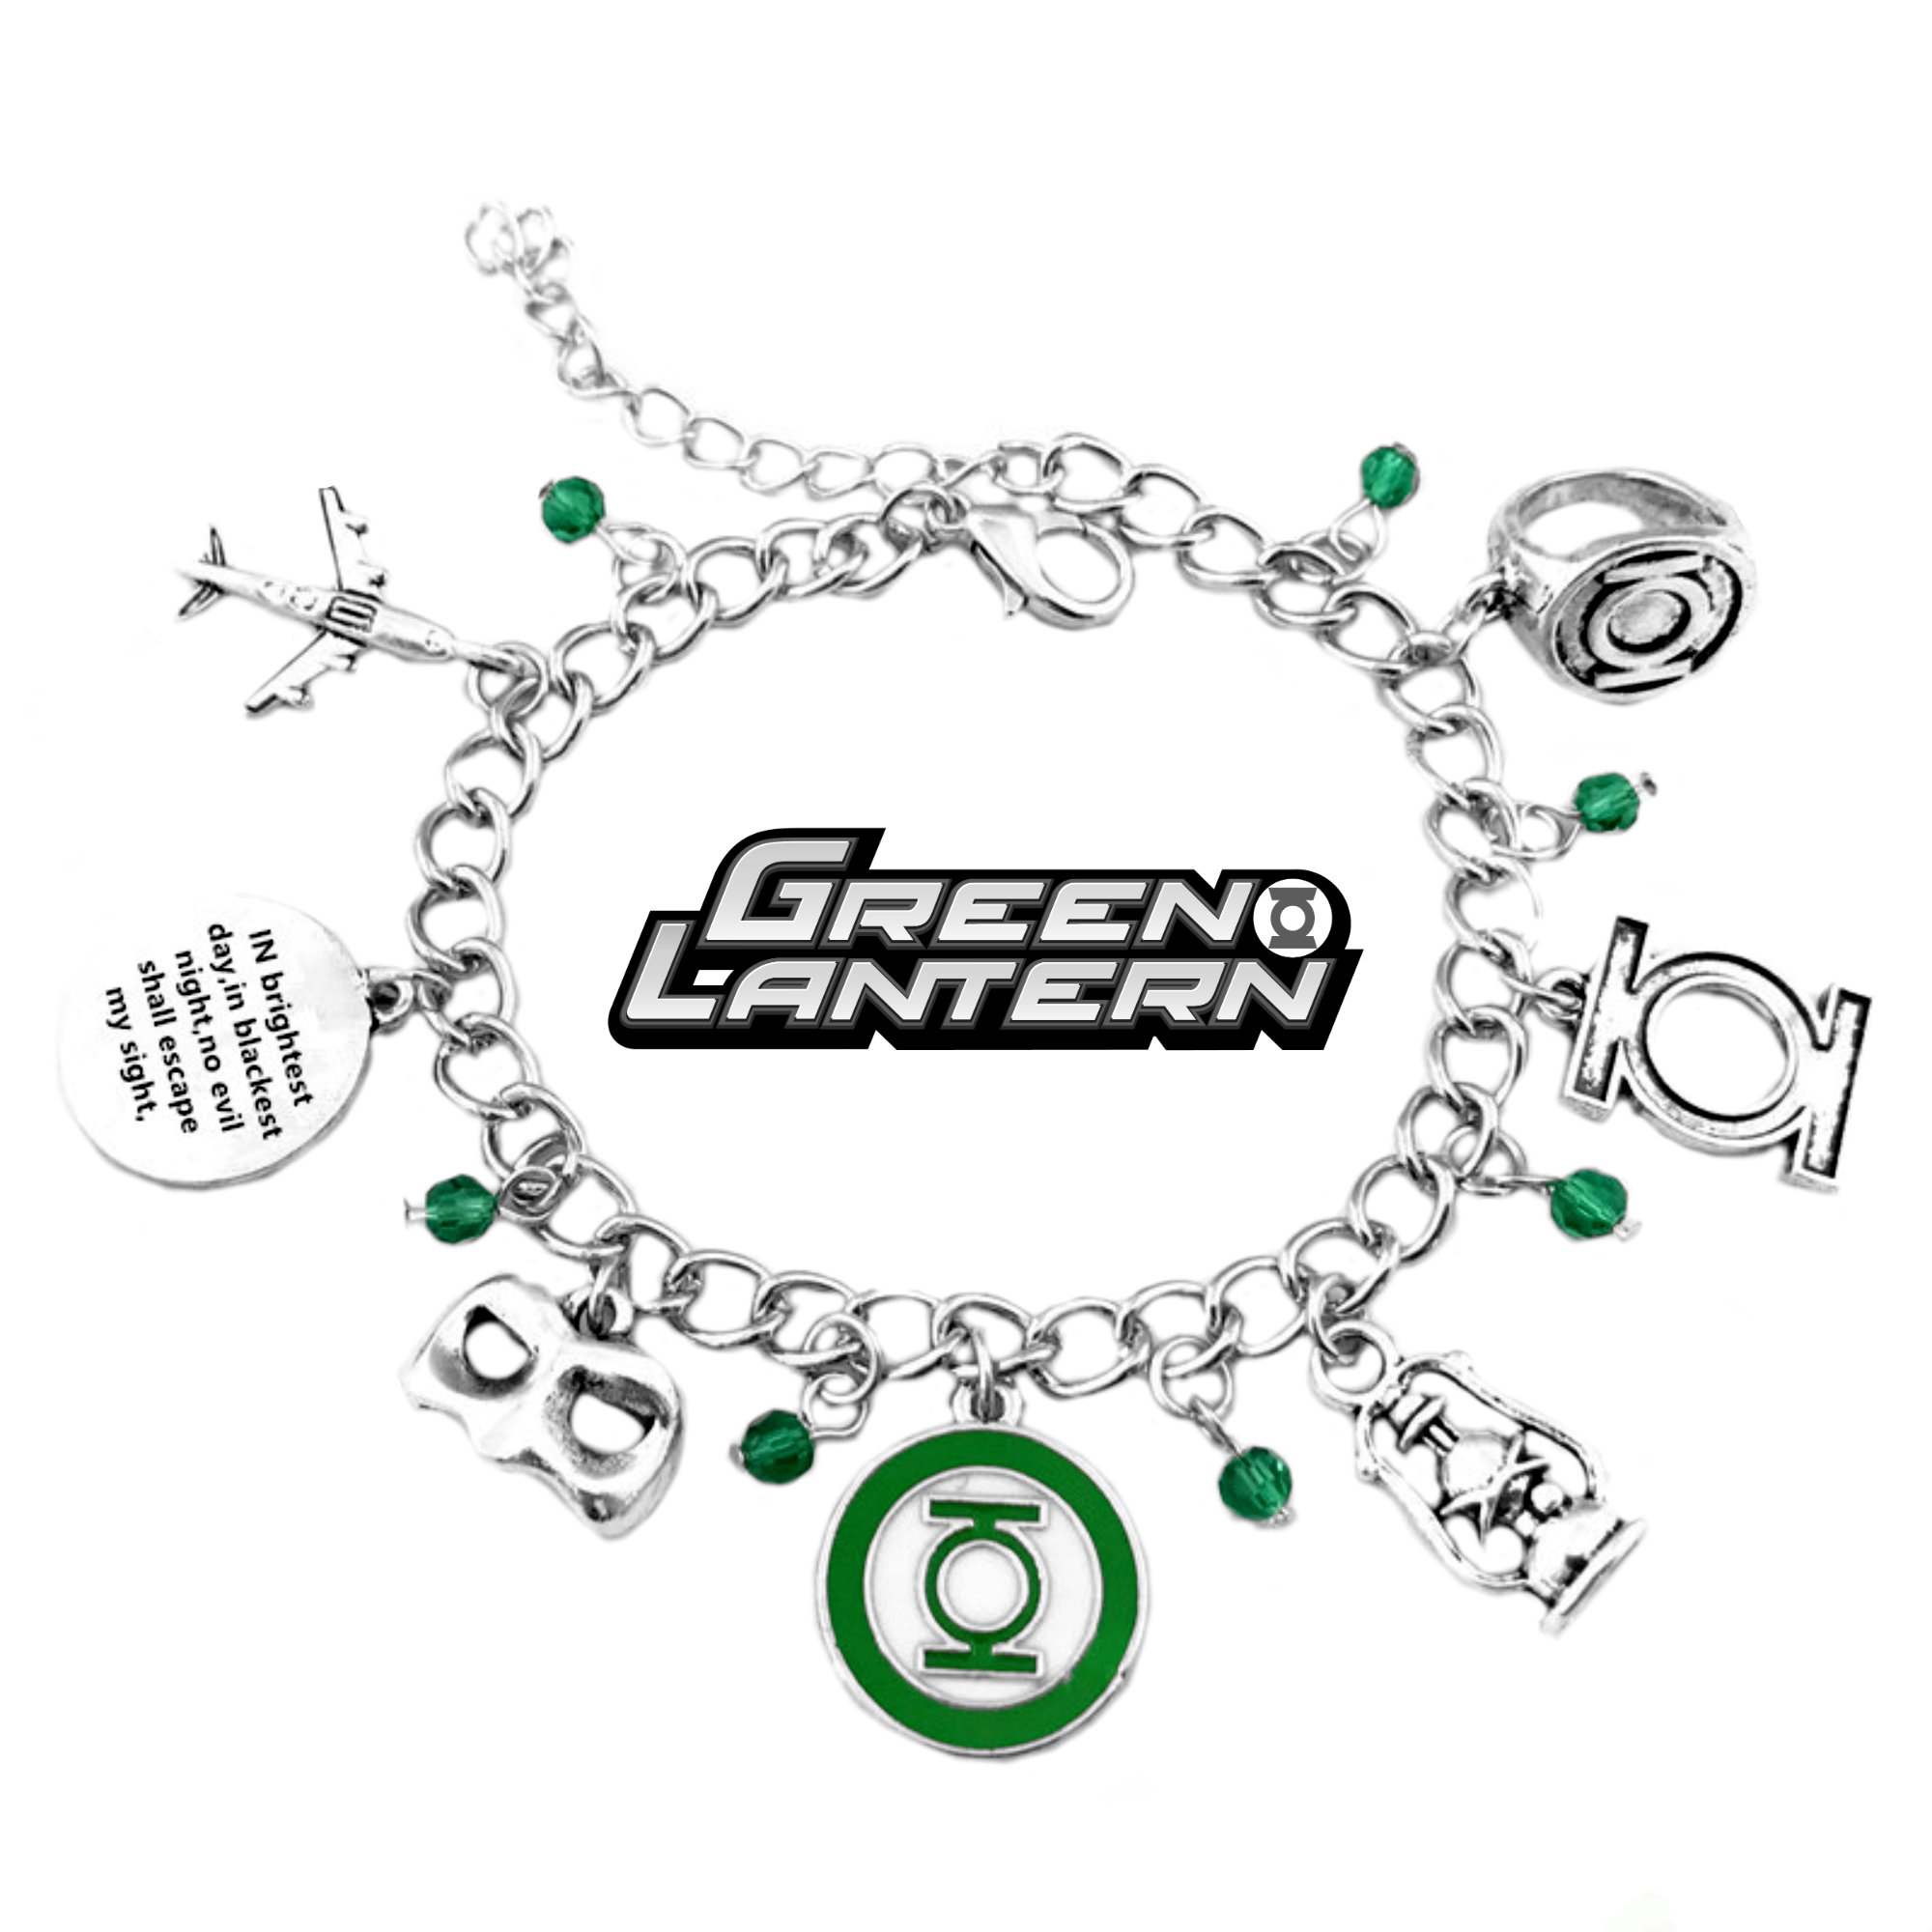 Green Lantern Charm Bracelet DC Comics Movies Cartoons Superhero Logo Theme Ryan Reynolds Premium Quality Detailed Cosplay Jewelry Gift Series